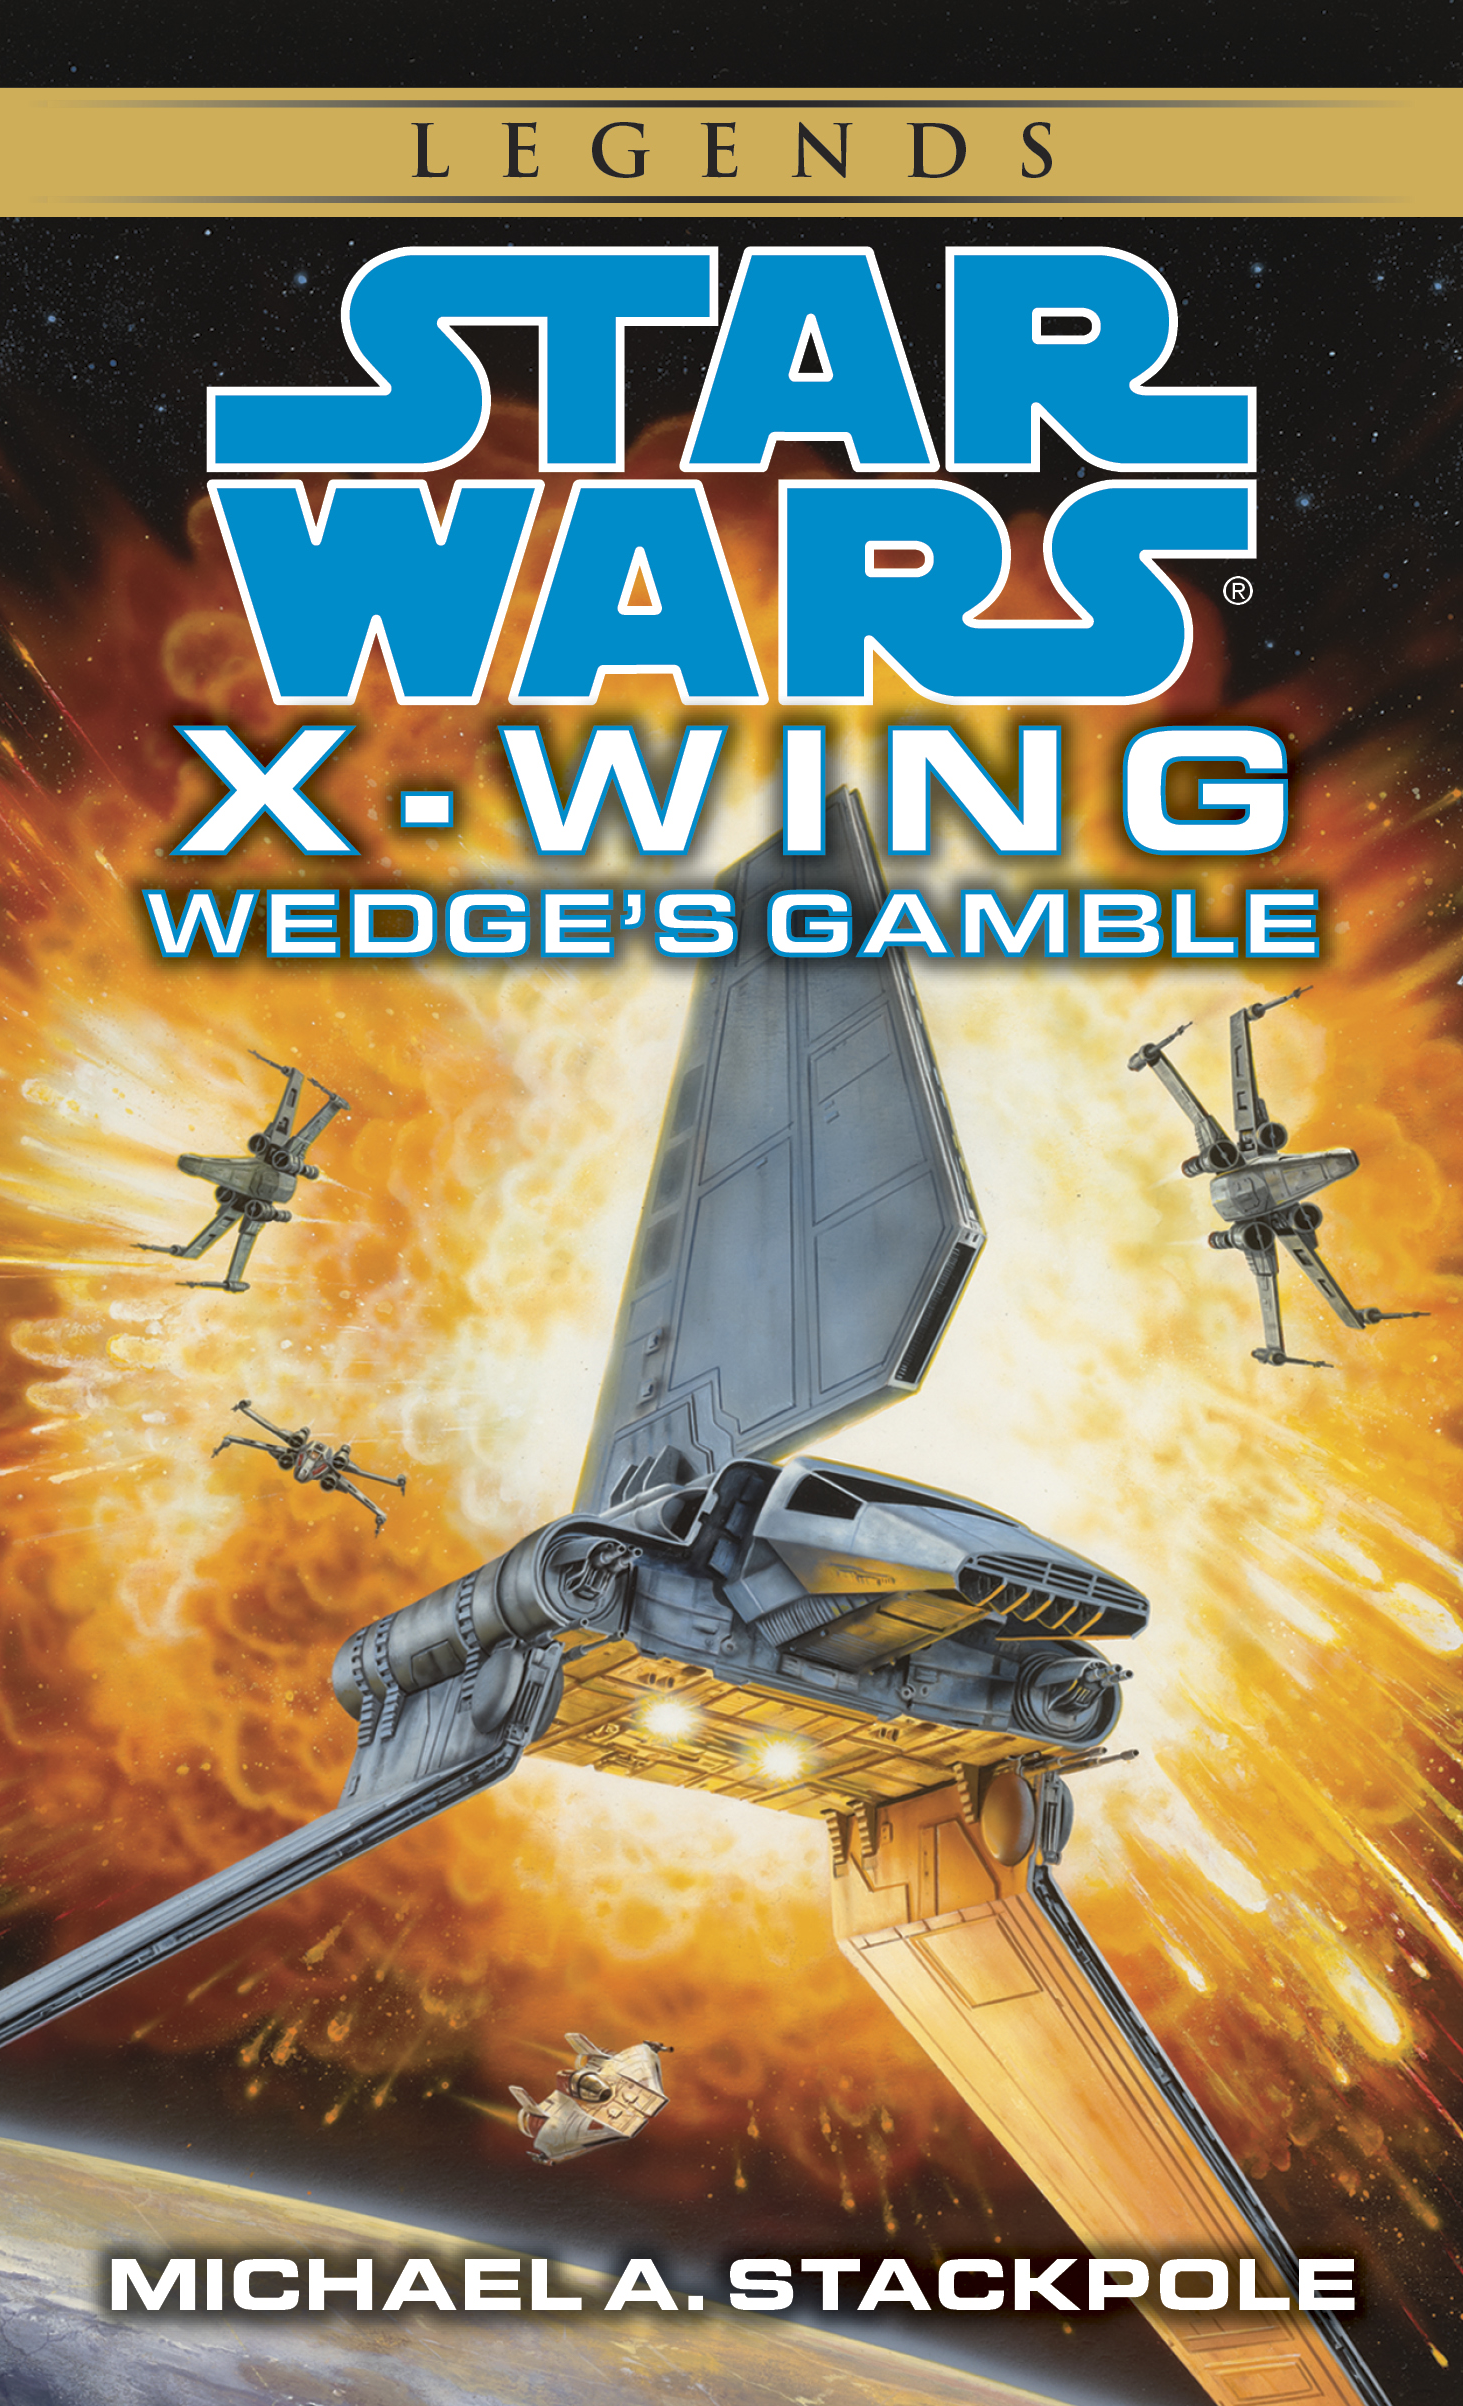 File:WedgesGamble-Legends.png